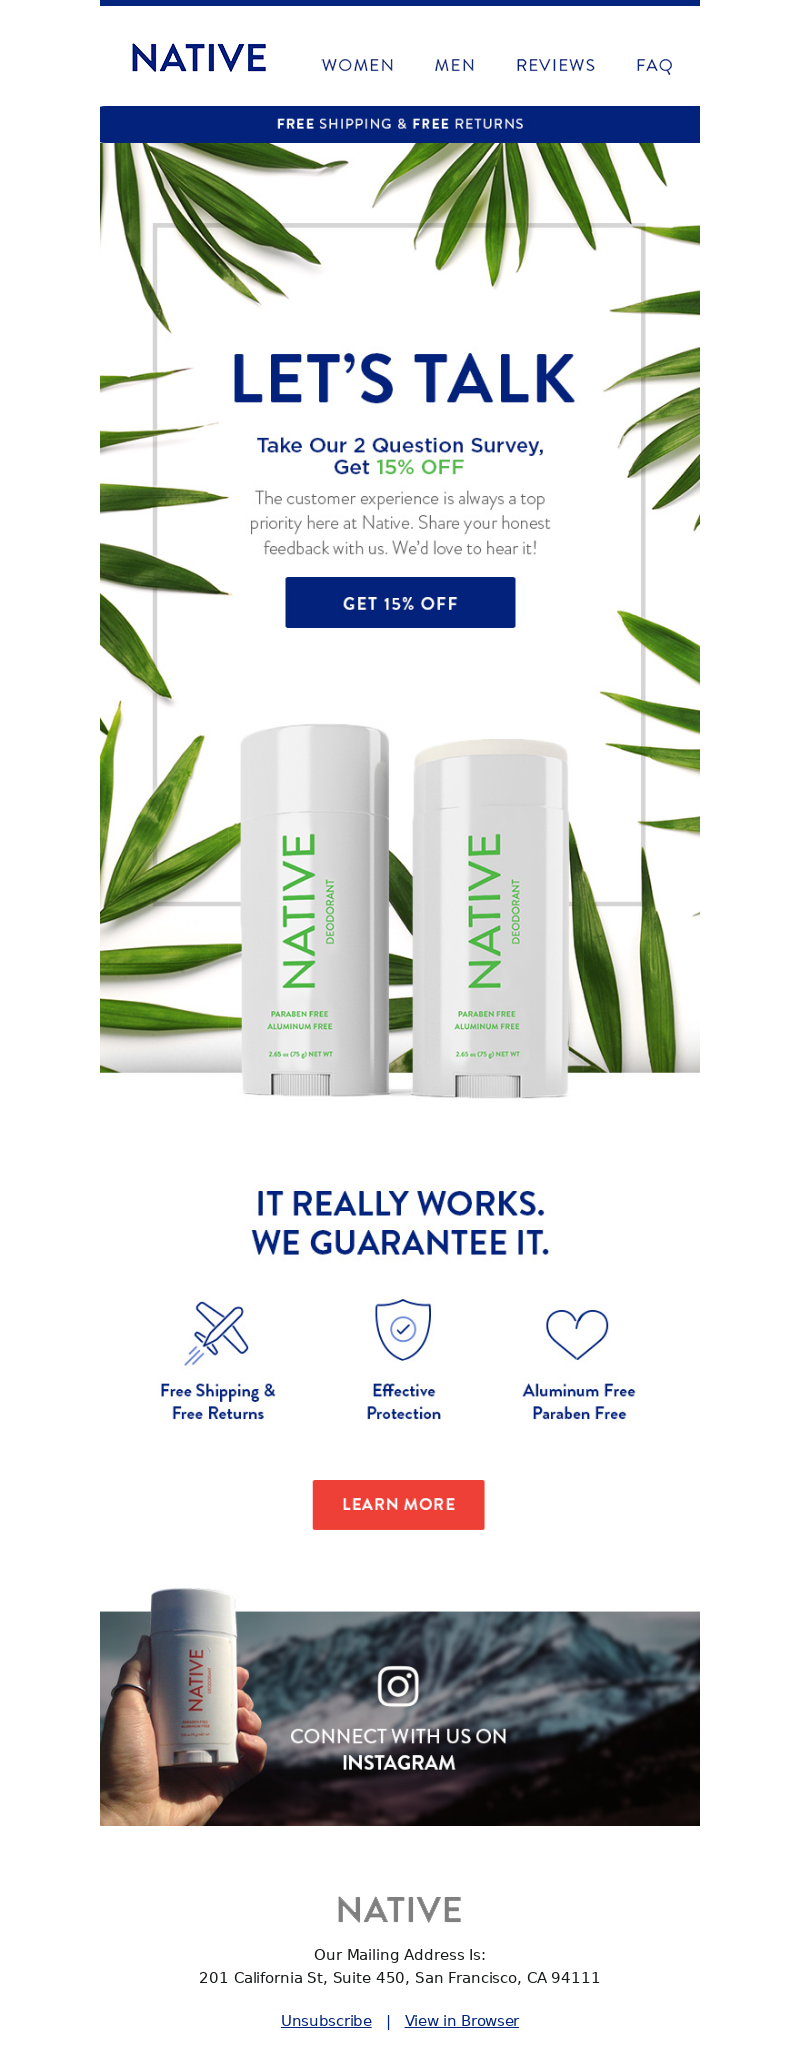 Native - Take Our Survey for a Special Offer!